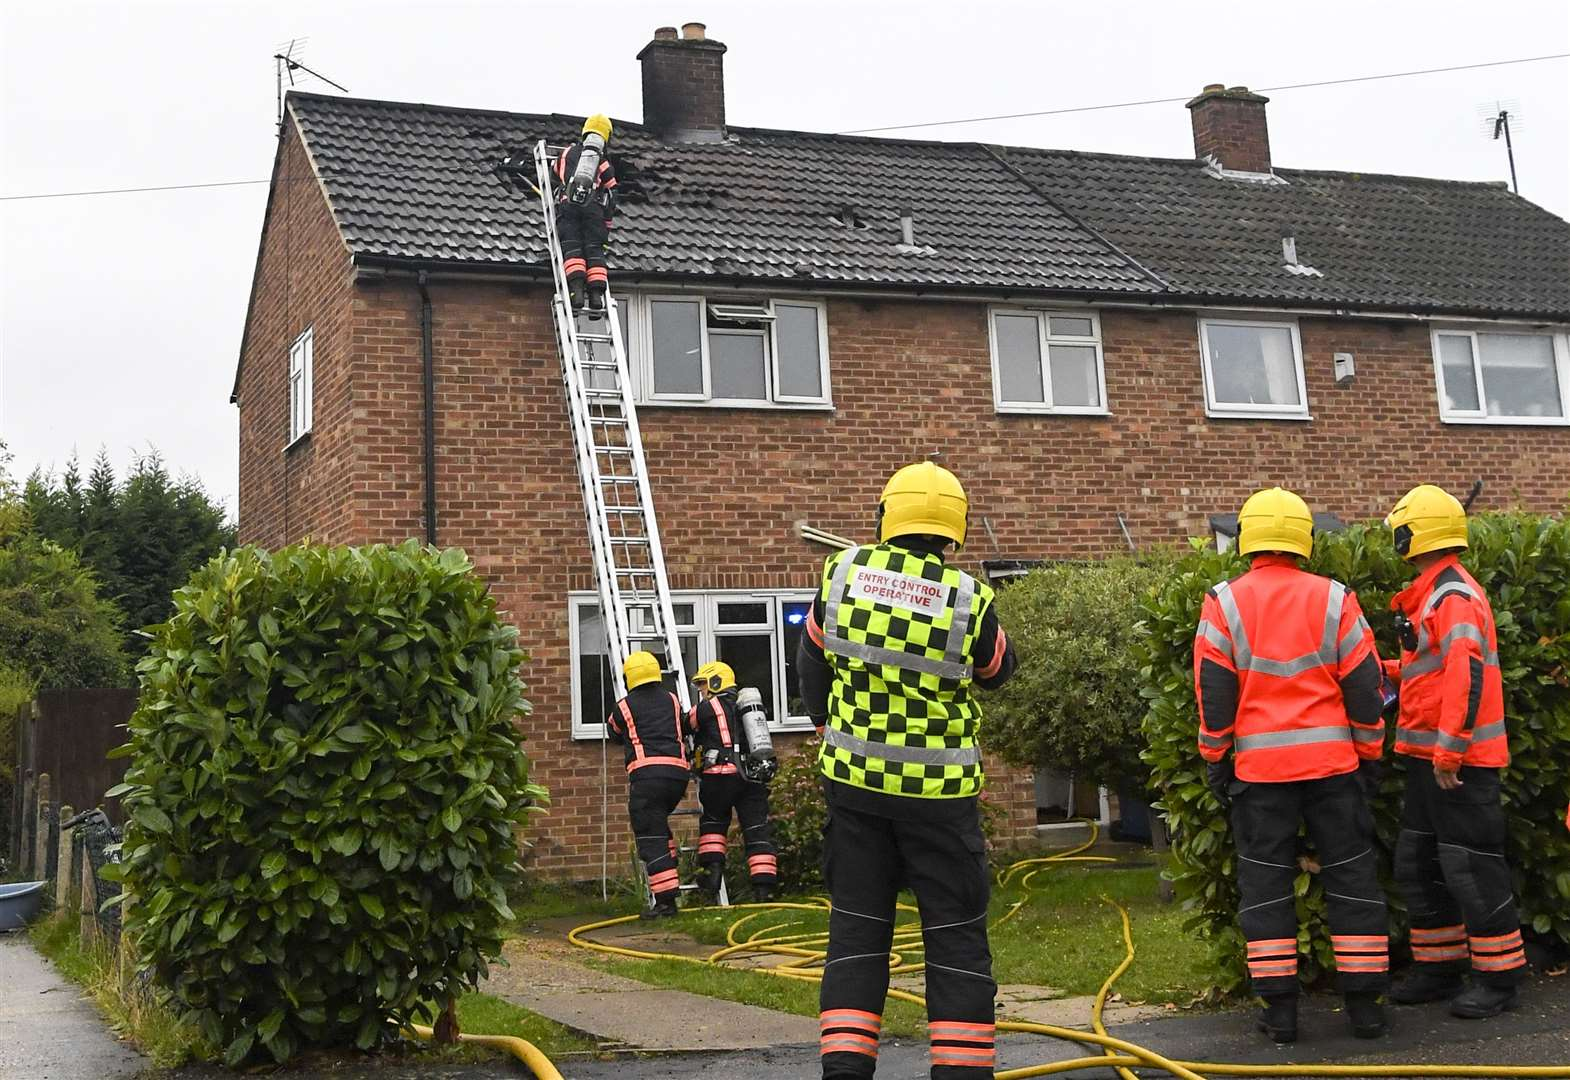 Man arrested after cannabis factory discovered at Milton house fire